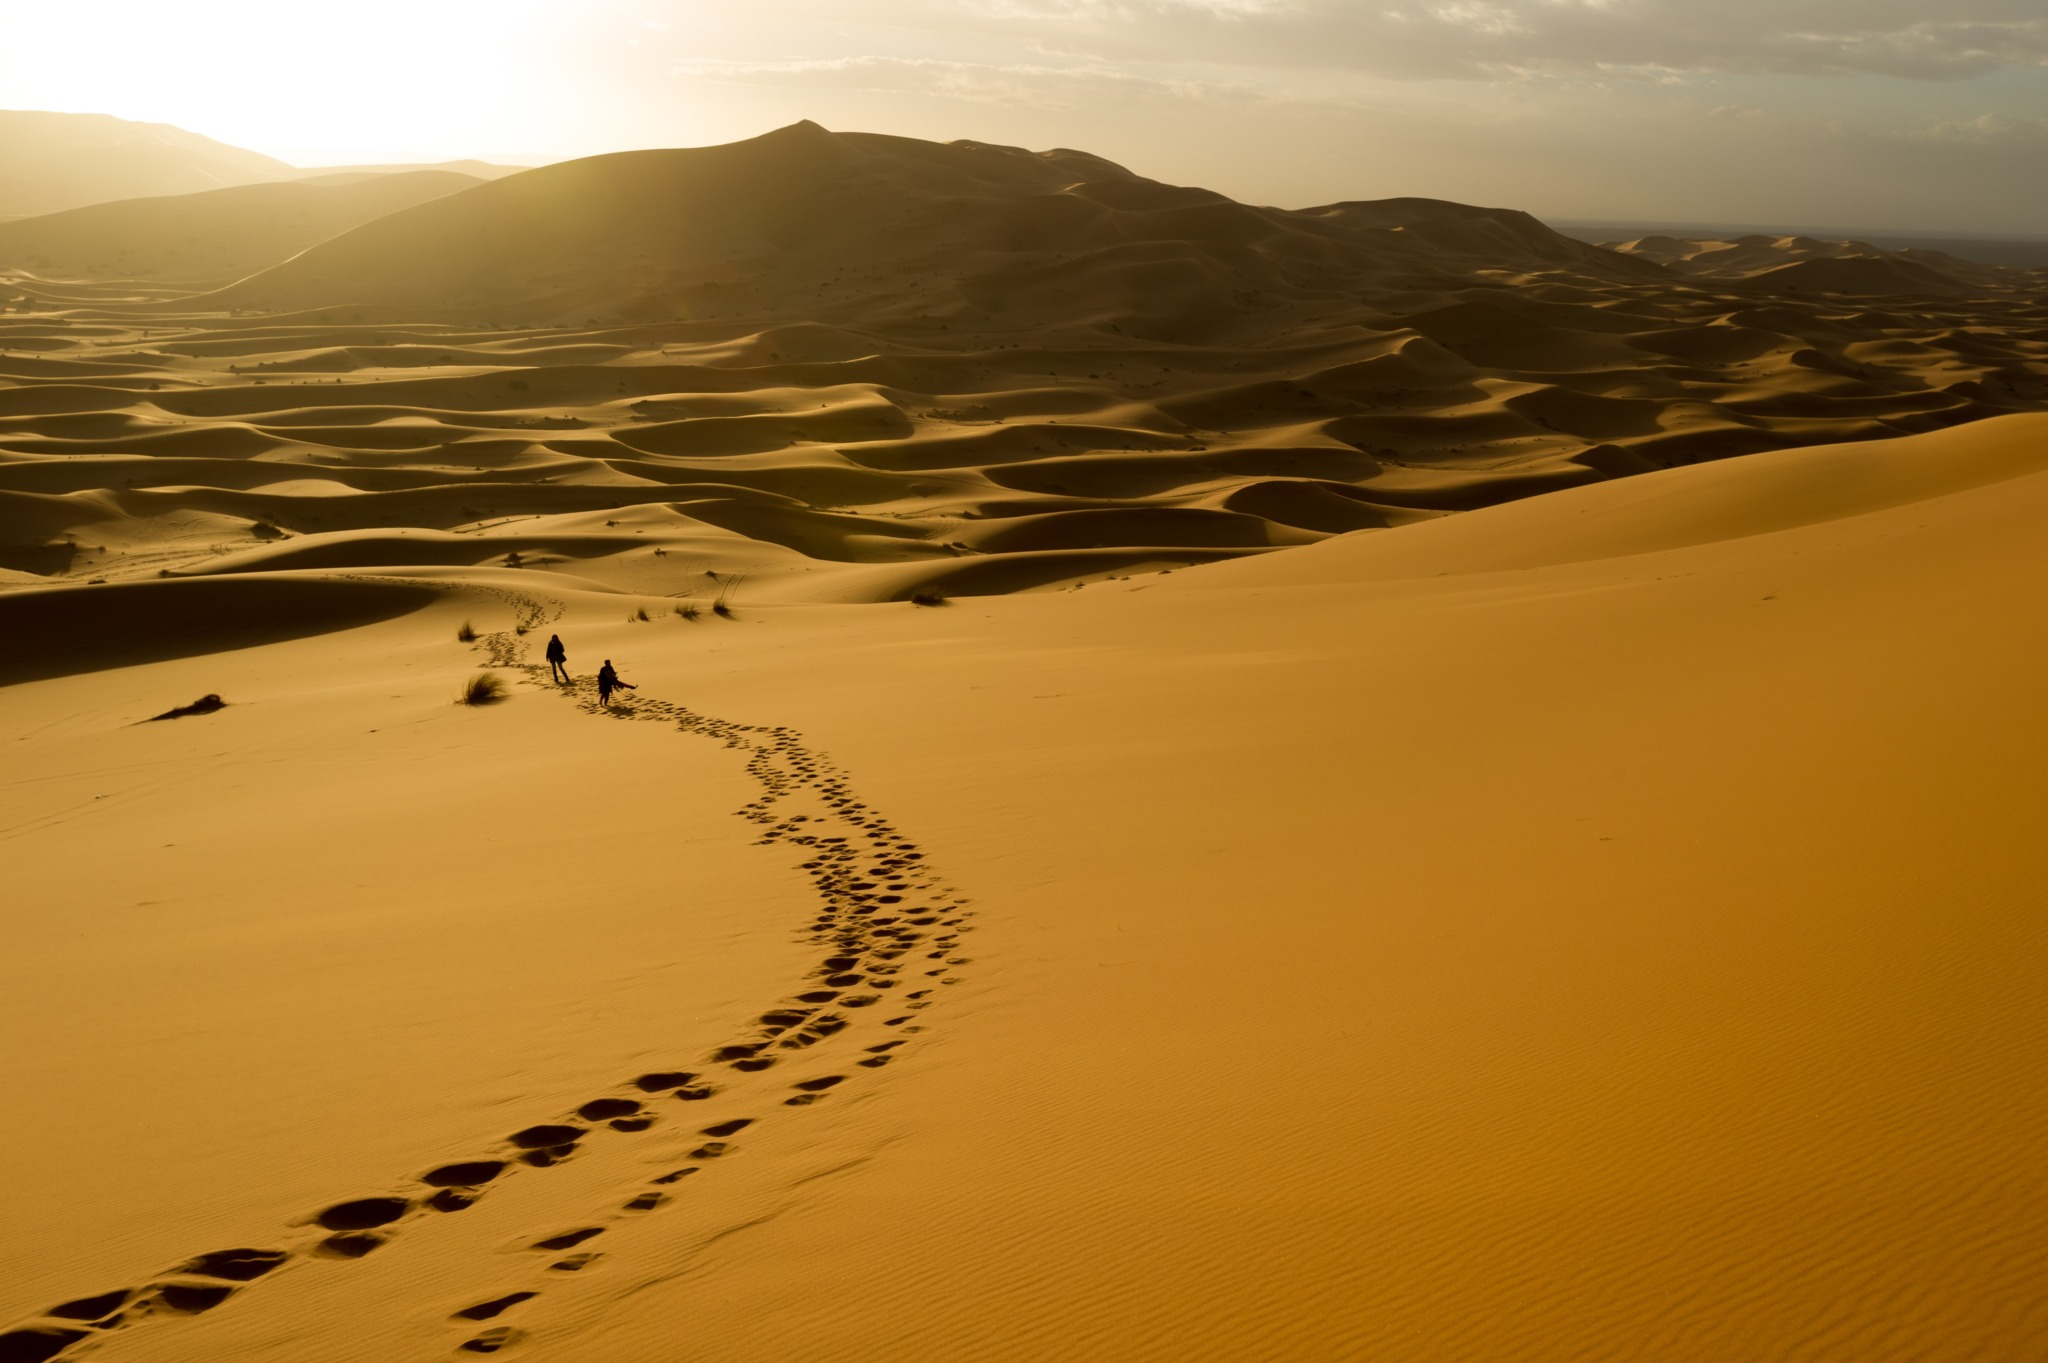 photo of the sand dunes of Meknes, Morocco